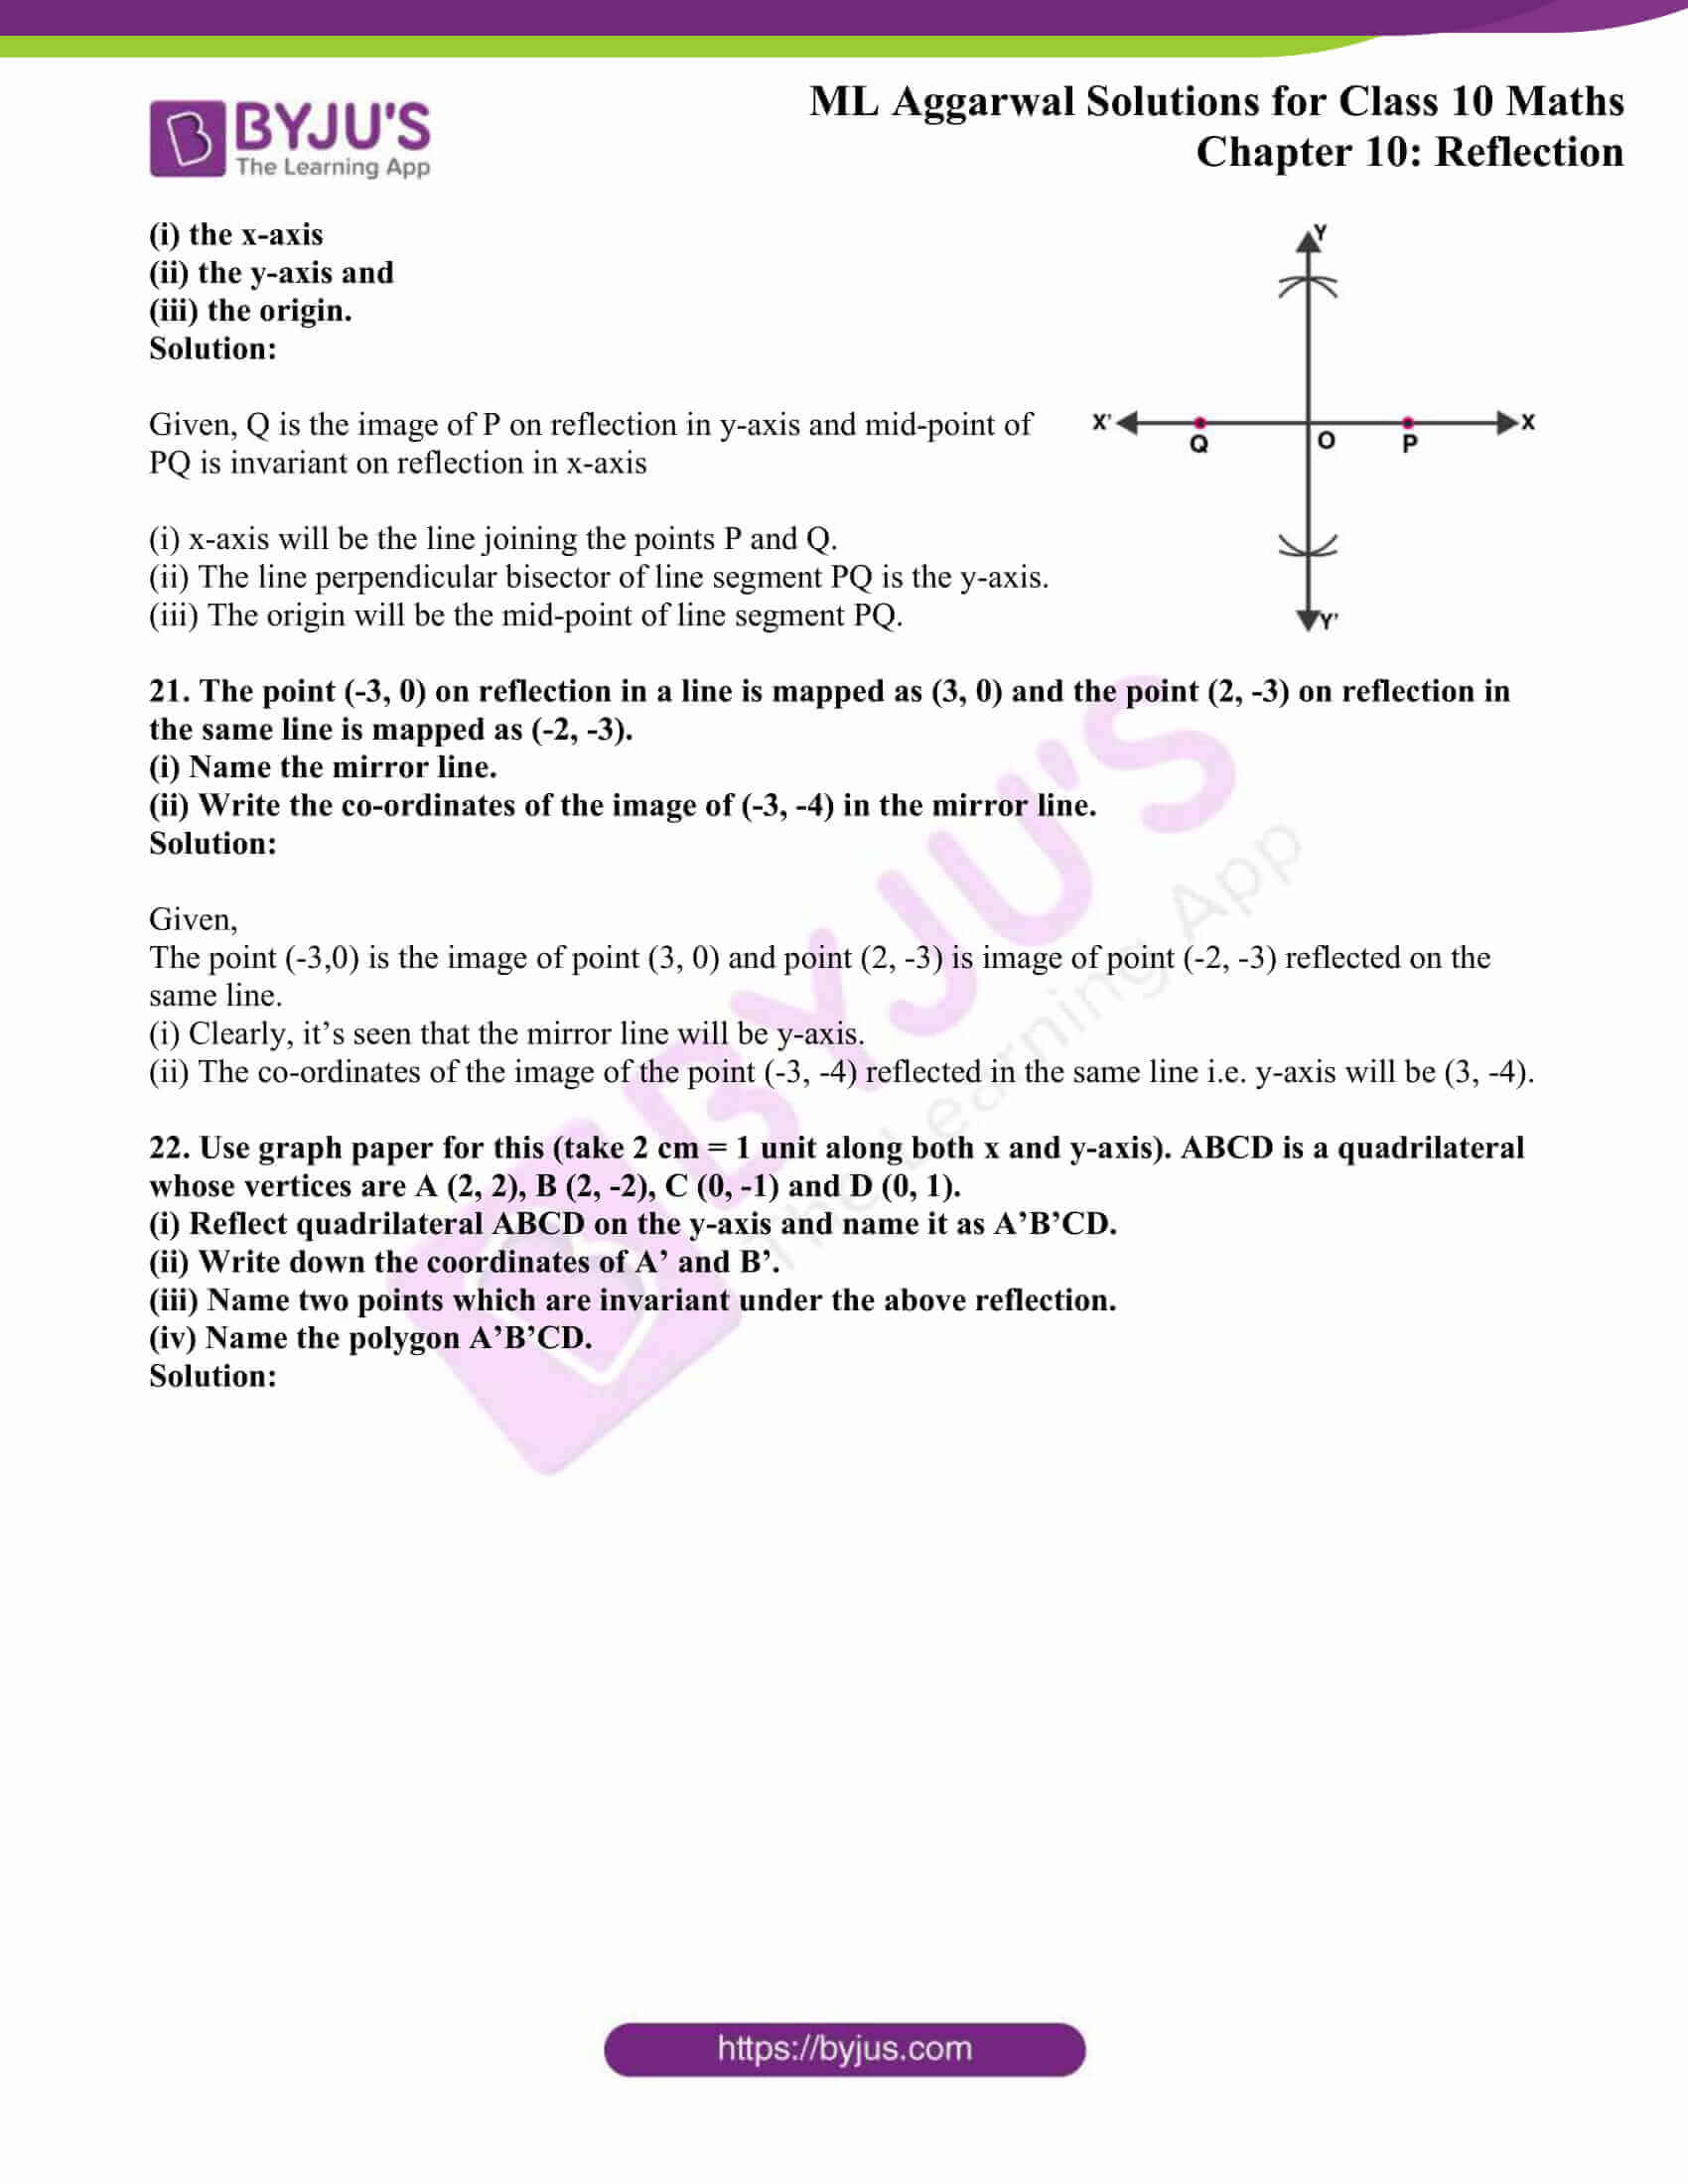 ml aggarwal solutions class 10 maths chapter 10 12